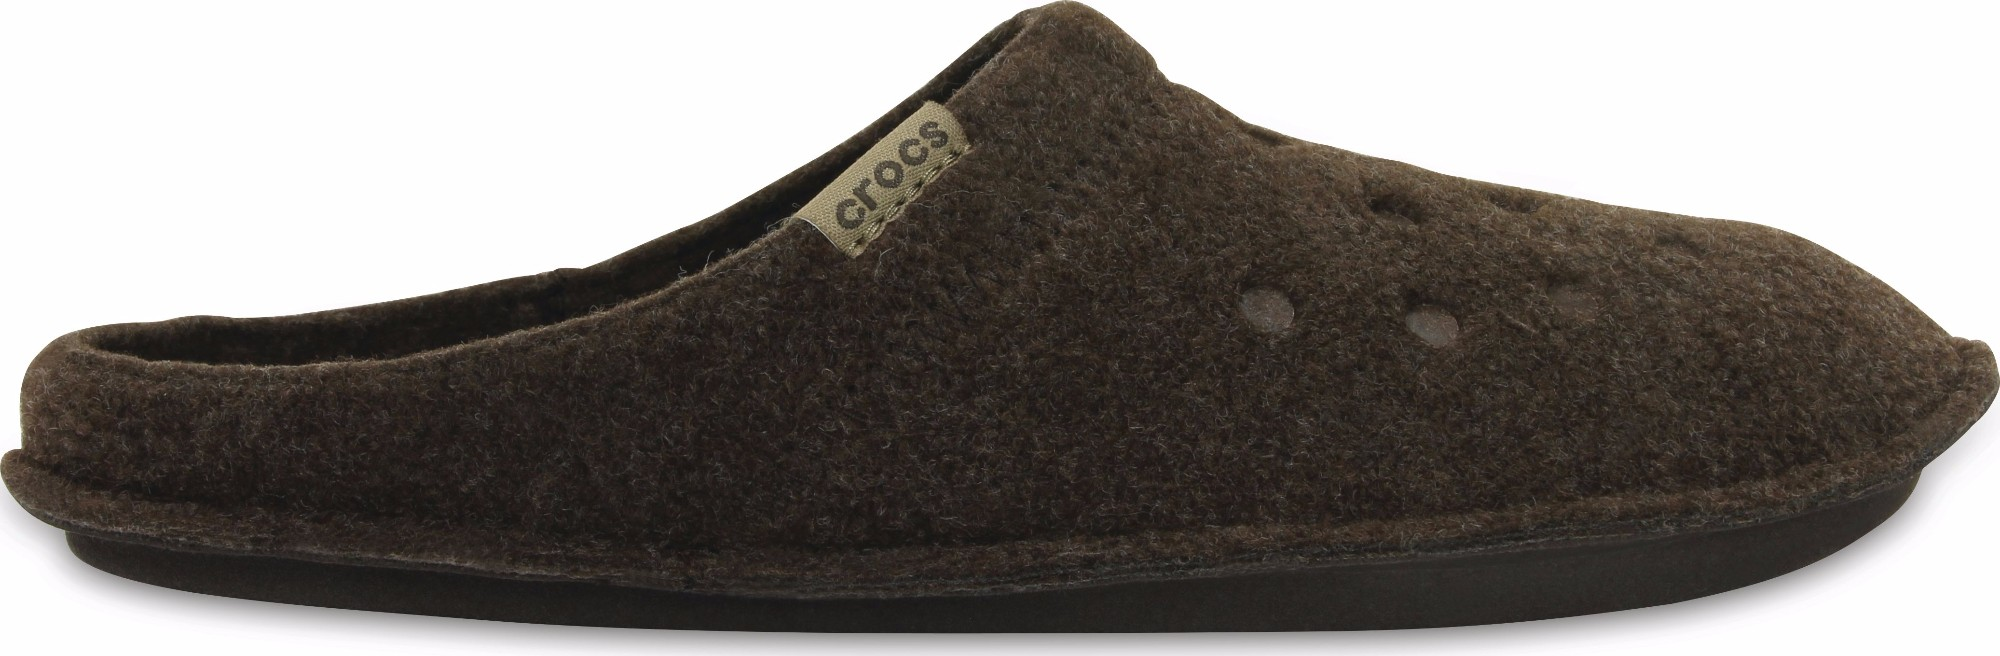 Crocs™ Classic Slipper Espresso/Walnut 41